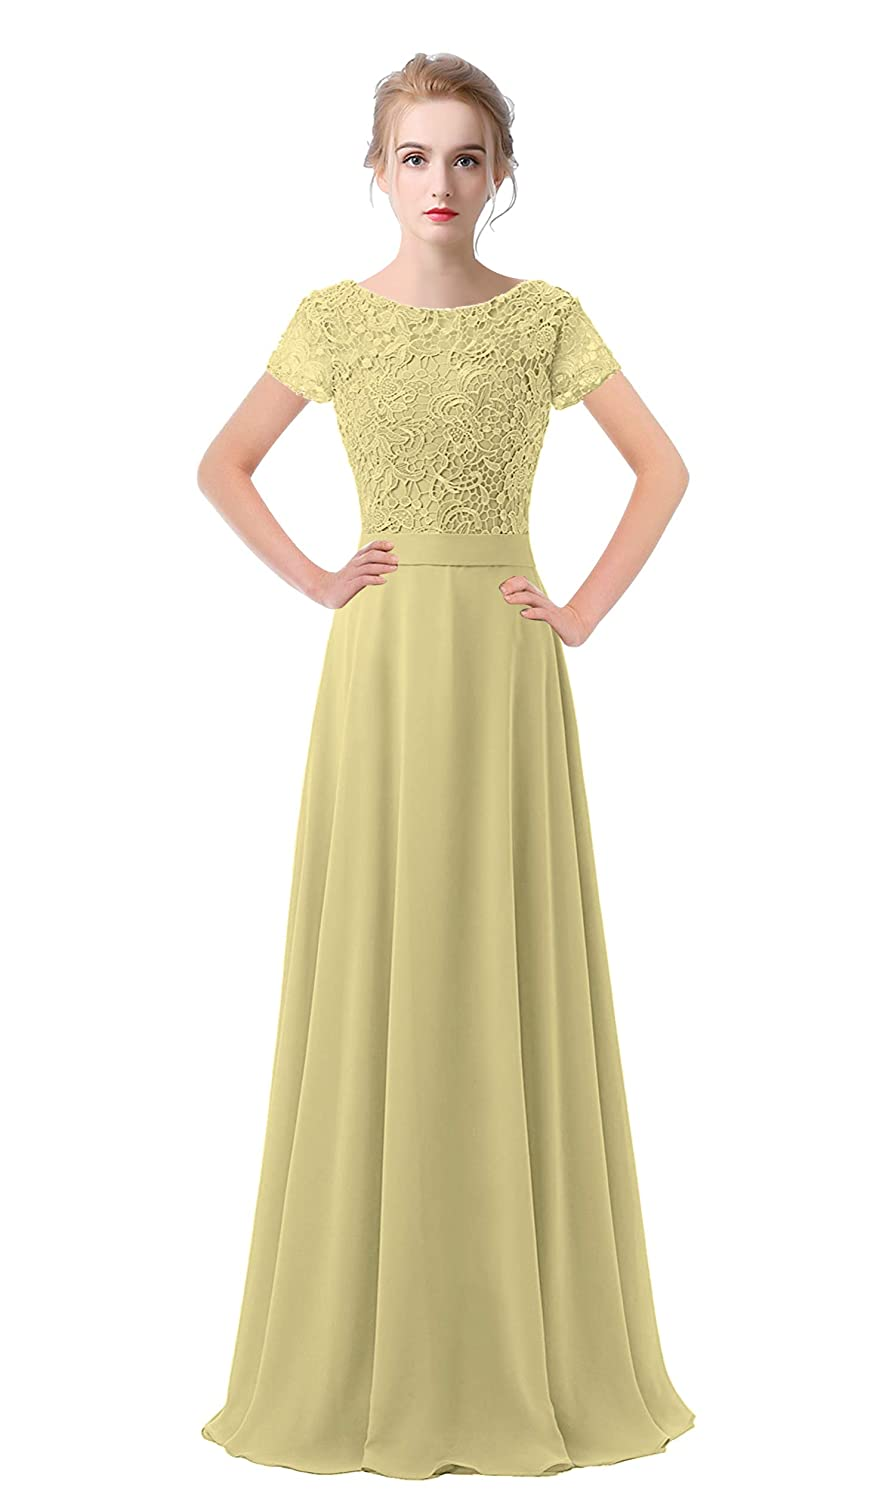 Champagne VaniaDress Women Lace Short Sleeves Long Evening Dress Prom Gown V061LF